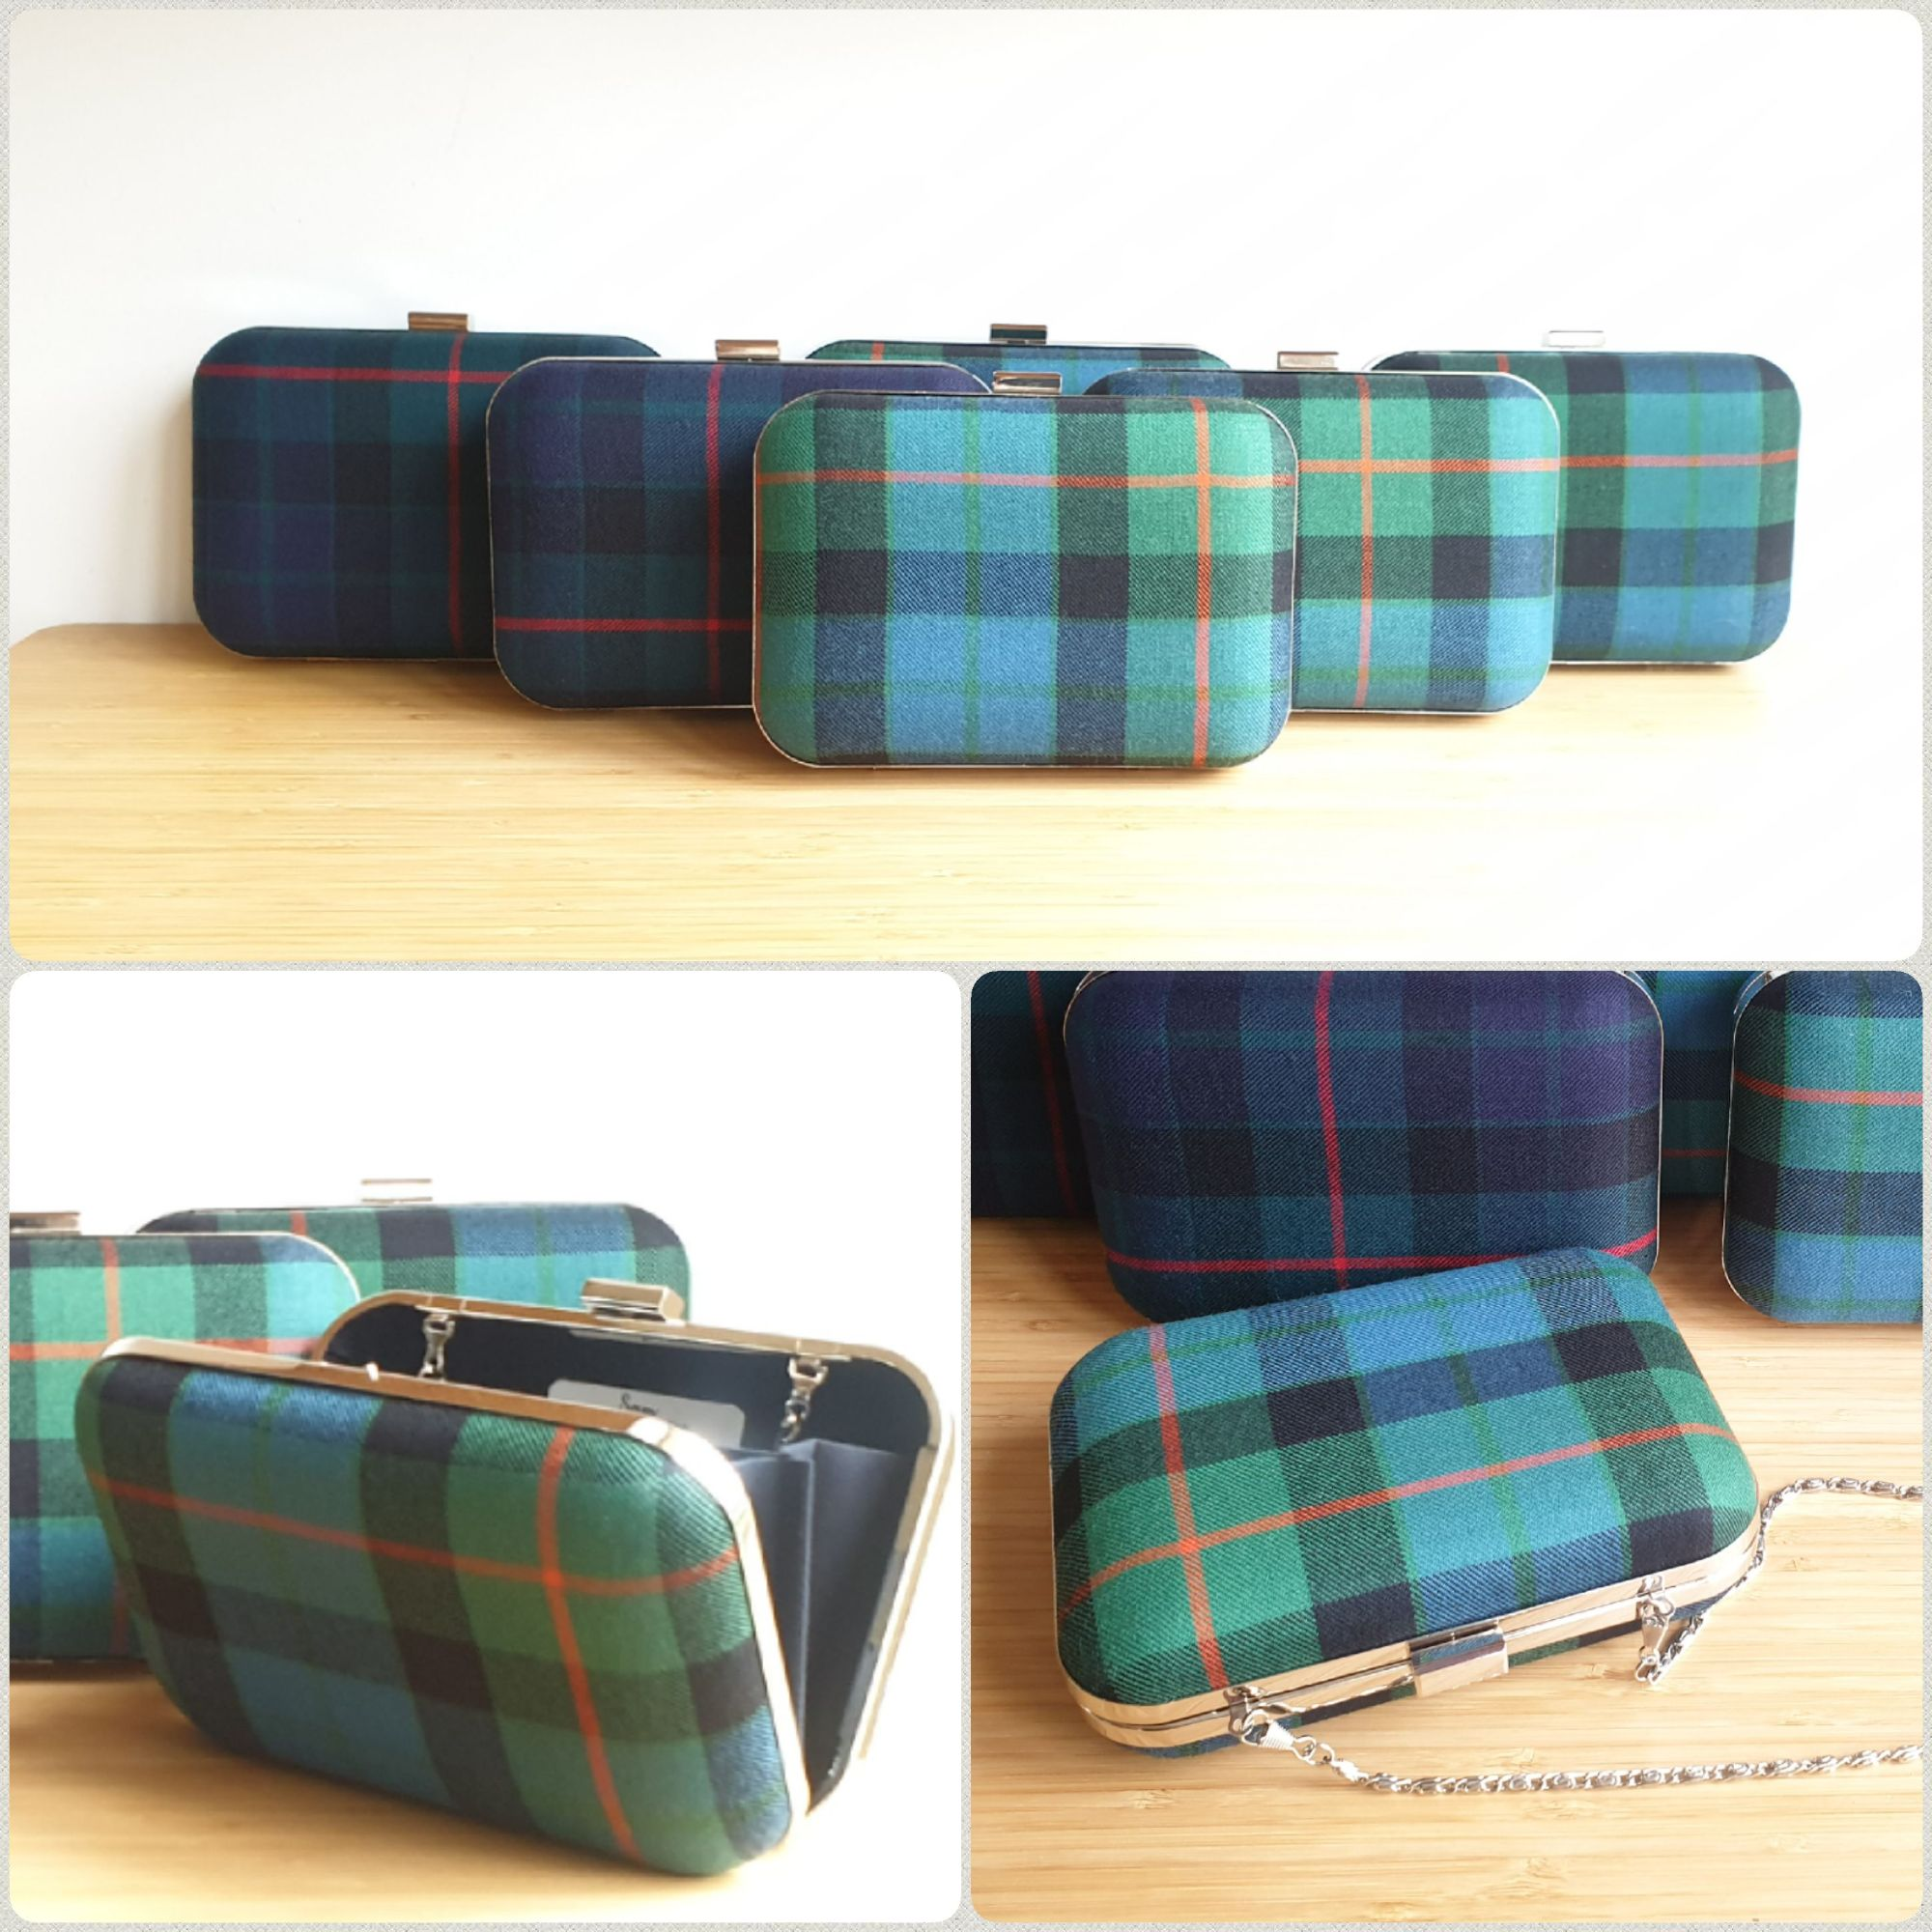 Gunn Modern and Gunn Ancient tartan clutch bags